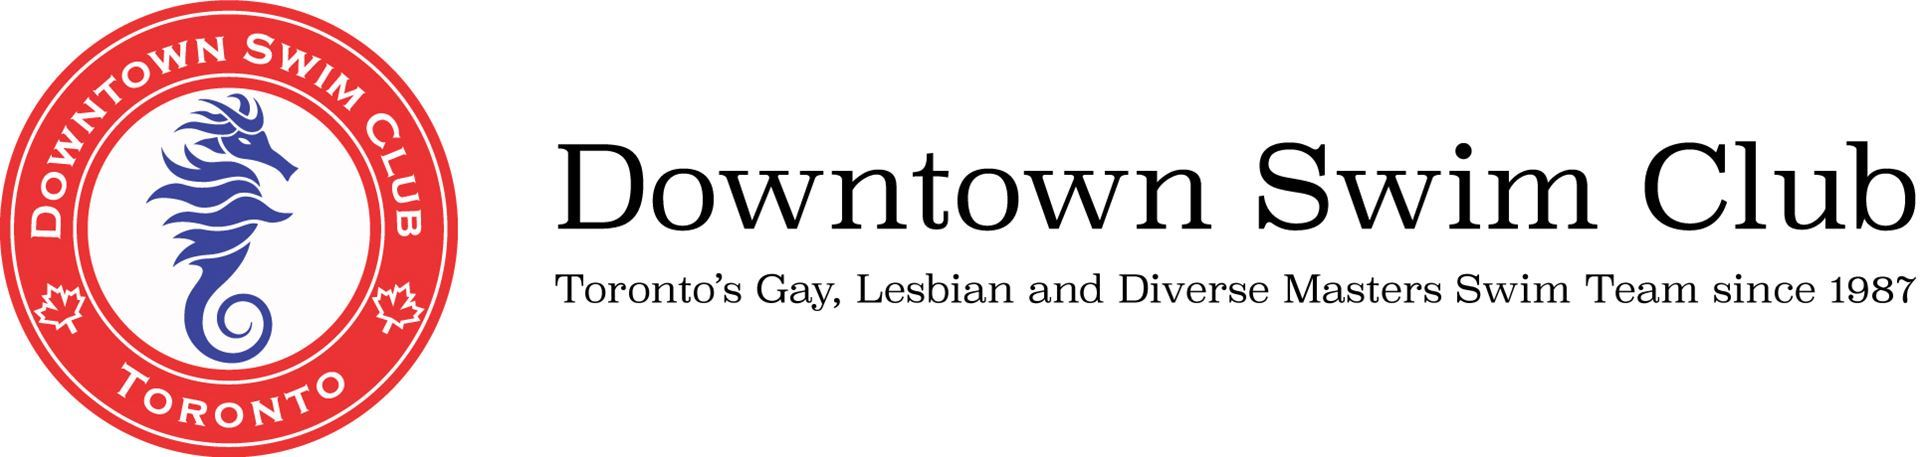 Downtown Swim Club Release Of Liability Waiver Of Claims And